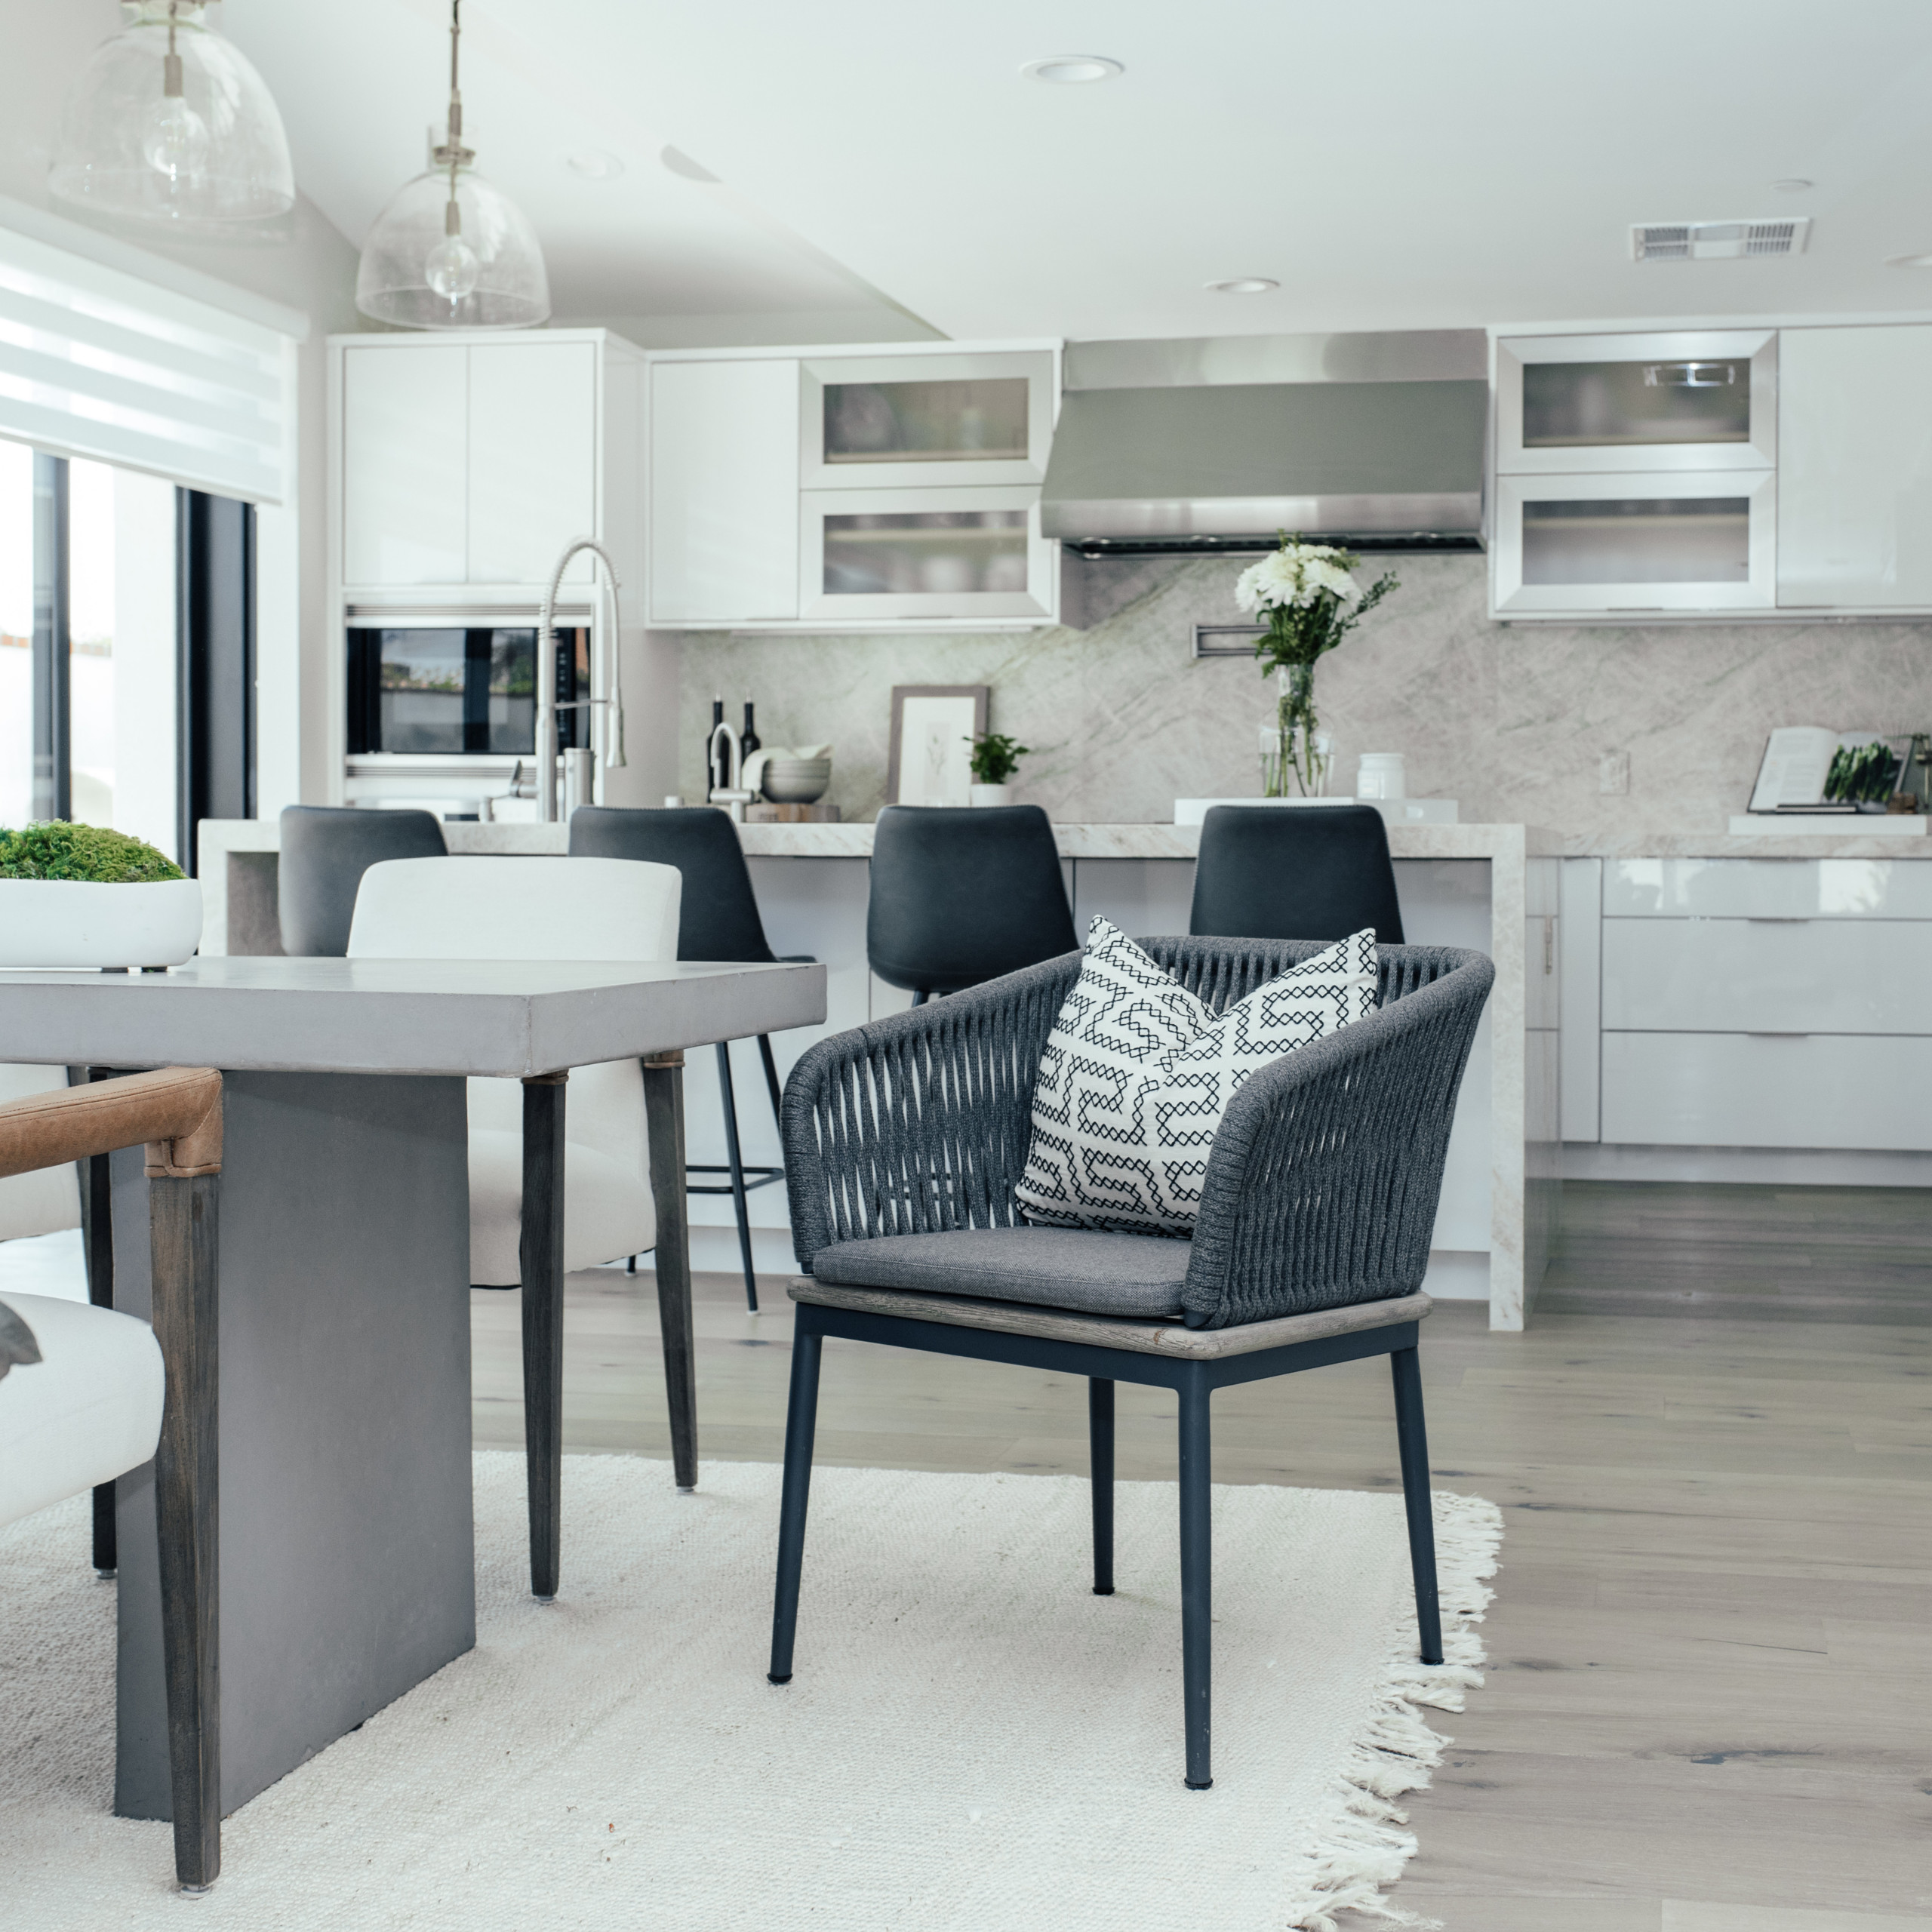 Modern Dining Room and Kitchen Design.